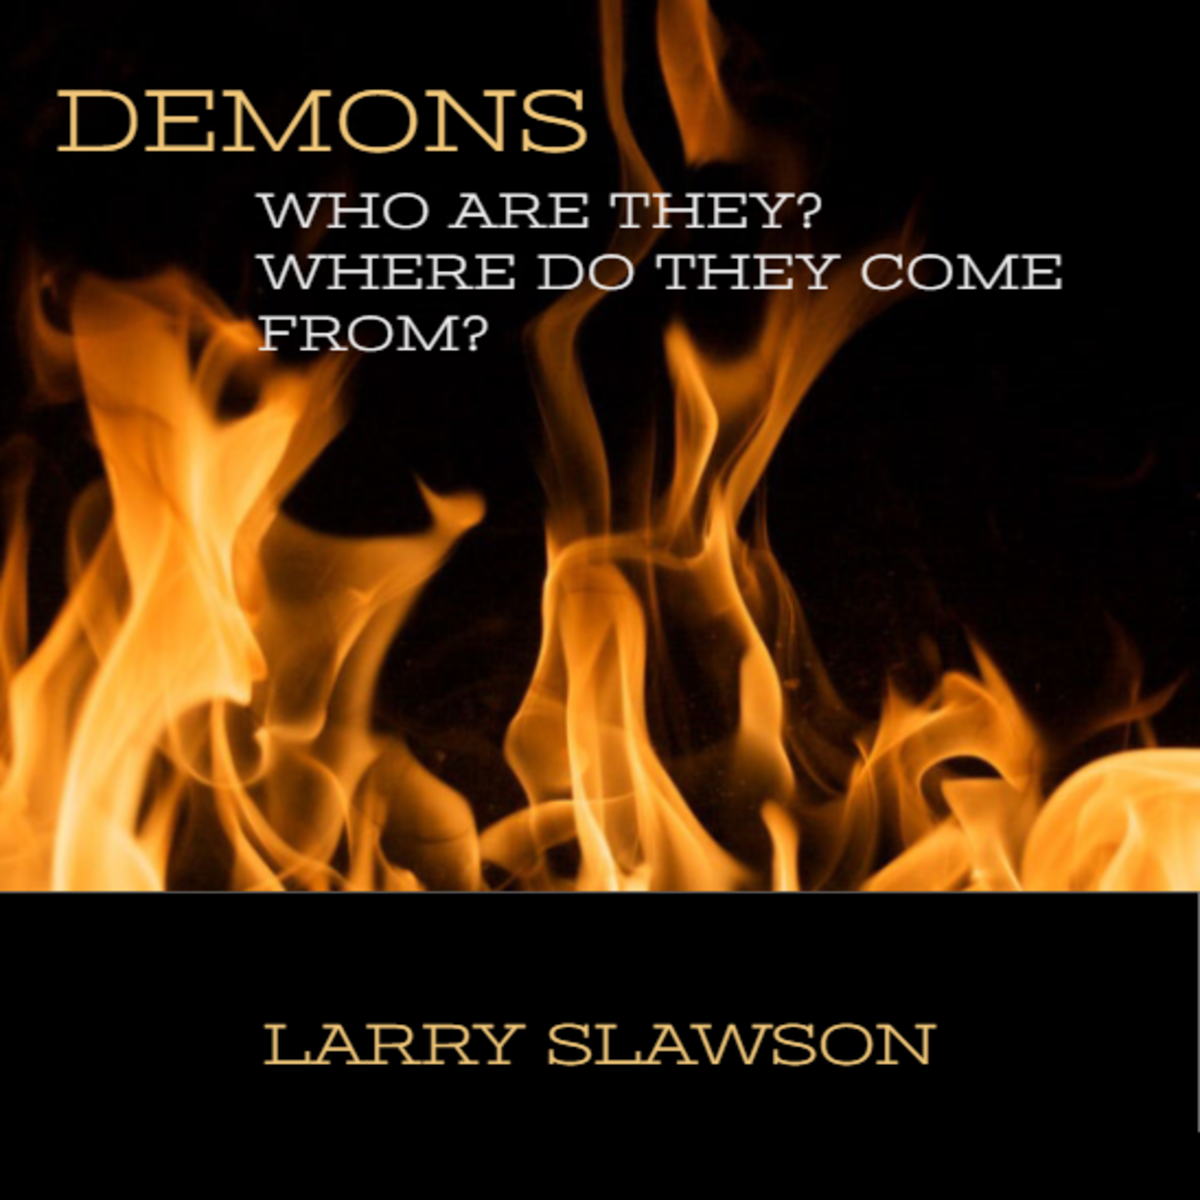 Demons: Who Are They? Where Do They Come From?